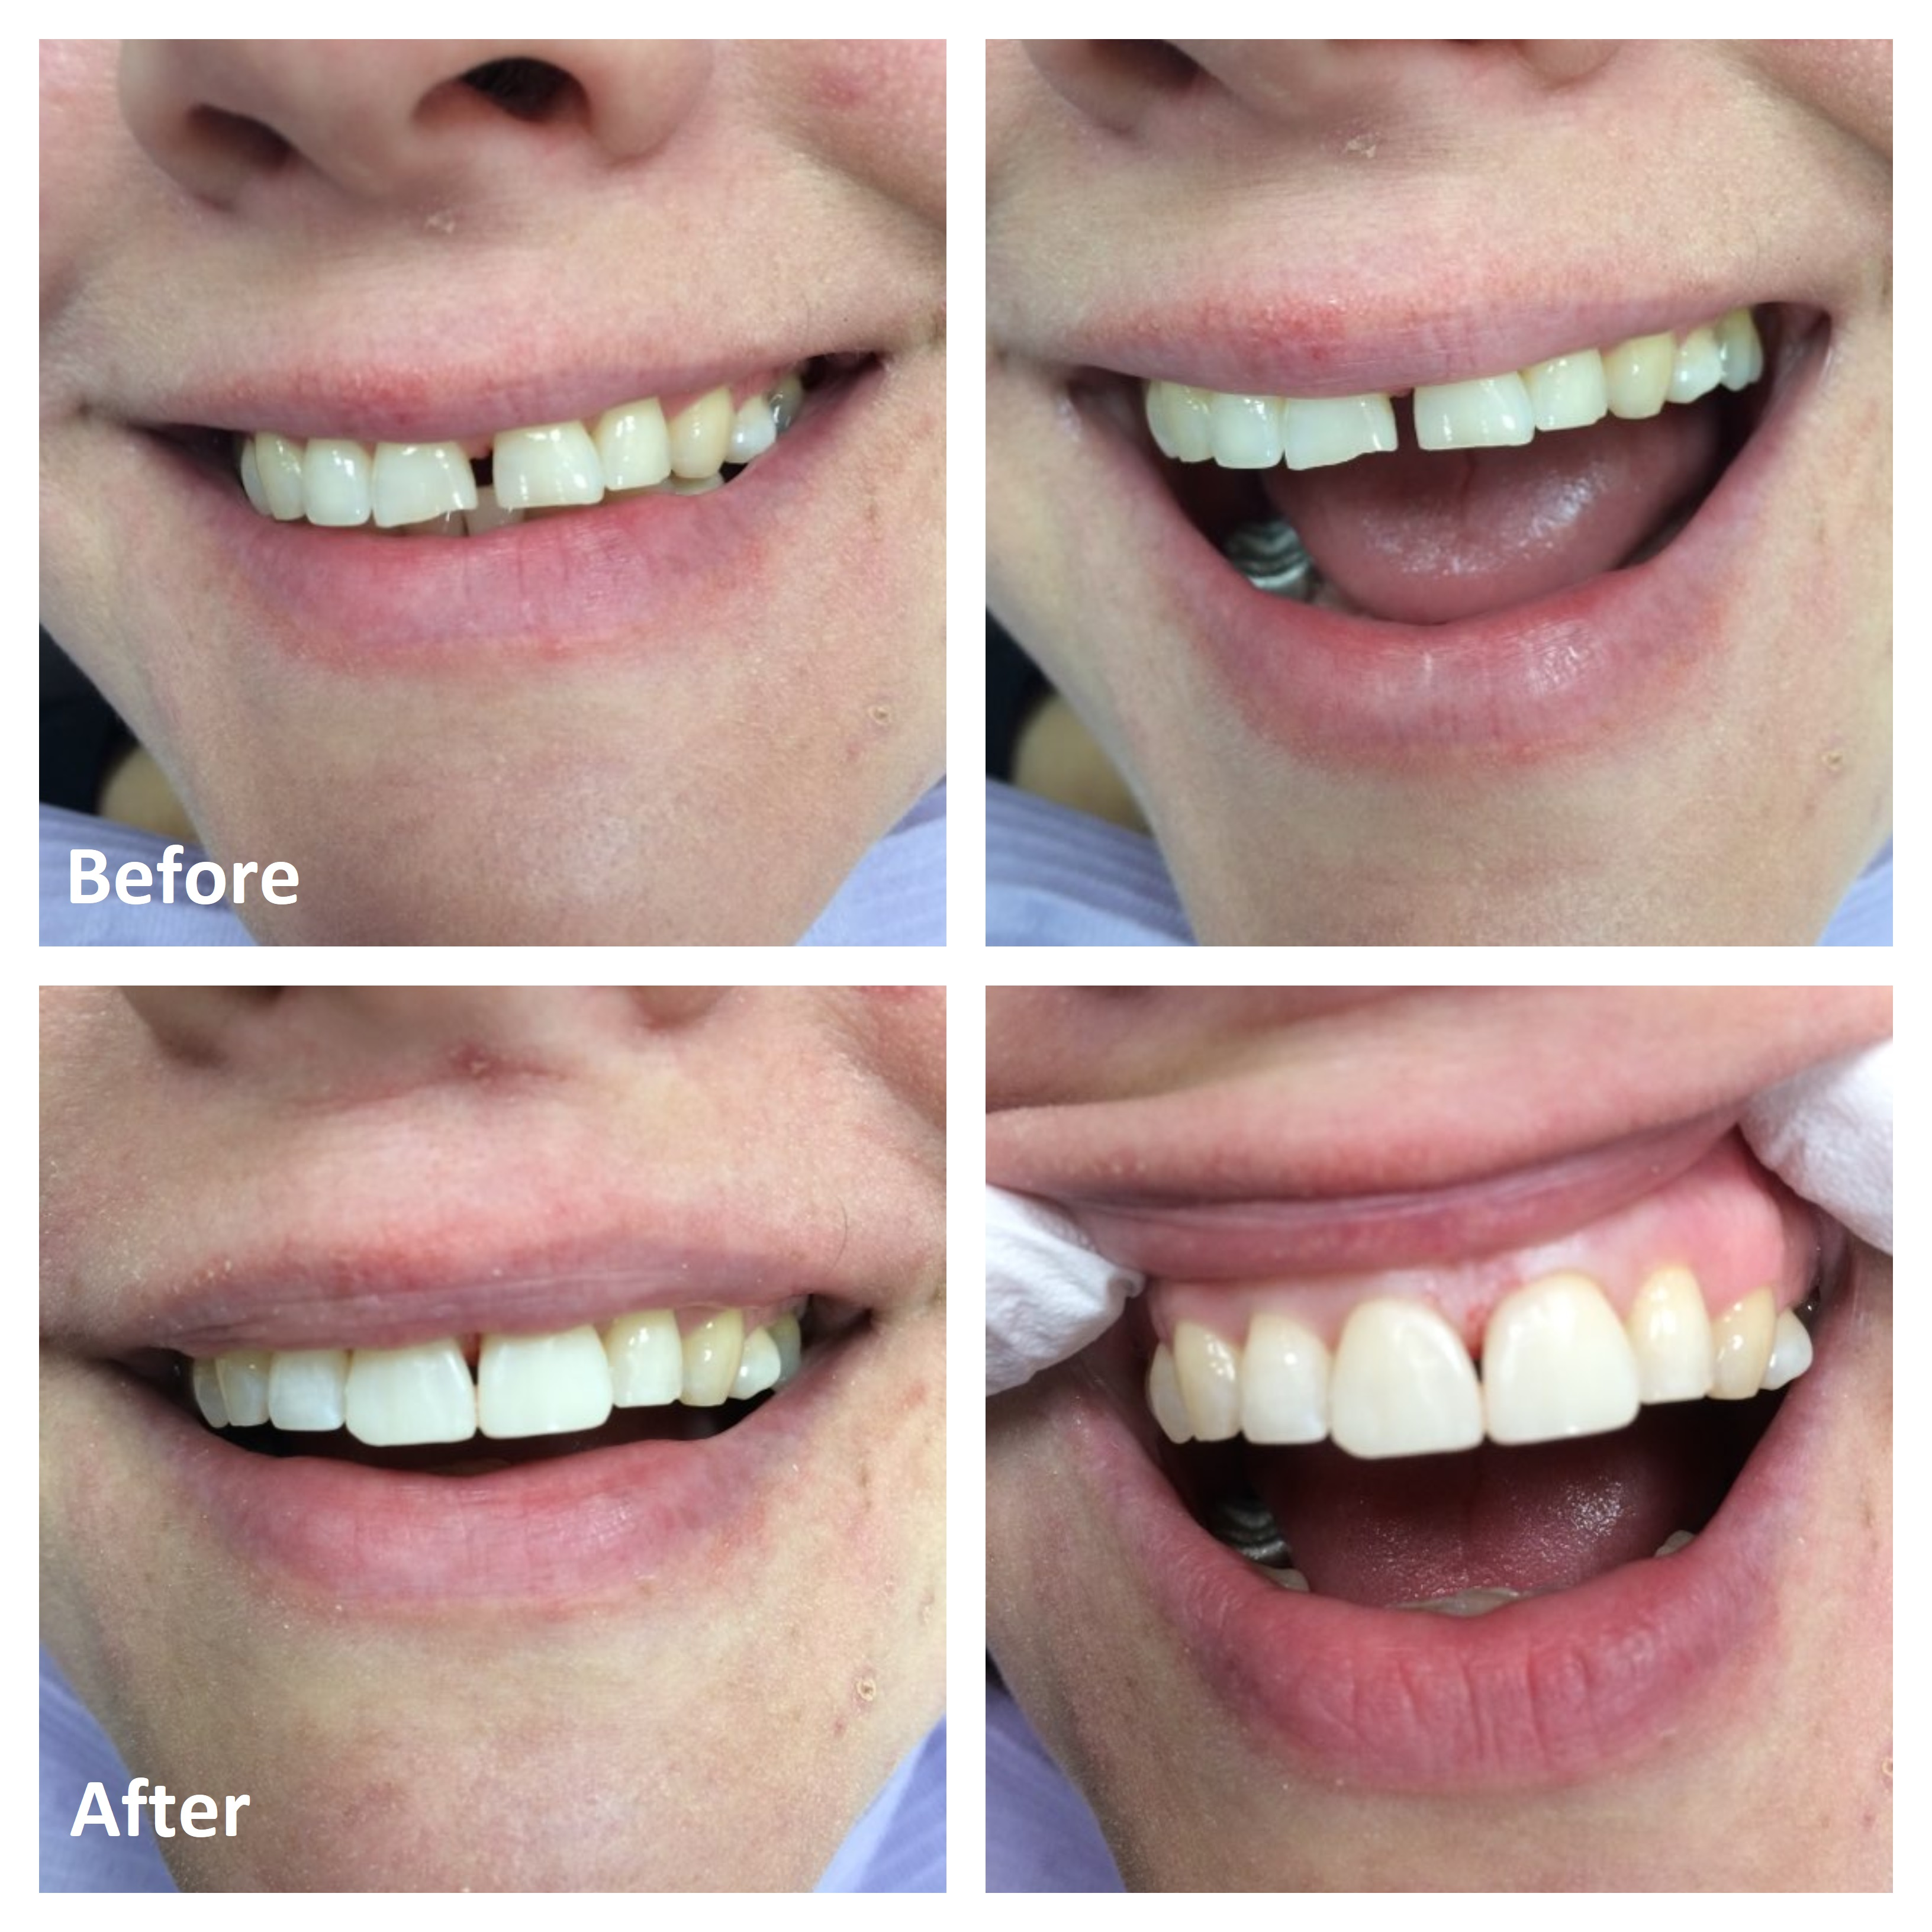 Cosmetic Dentistry Procedures | Before and After Photos | Cosmetic Dentist Ottawa